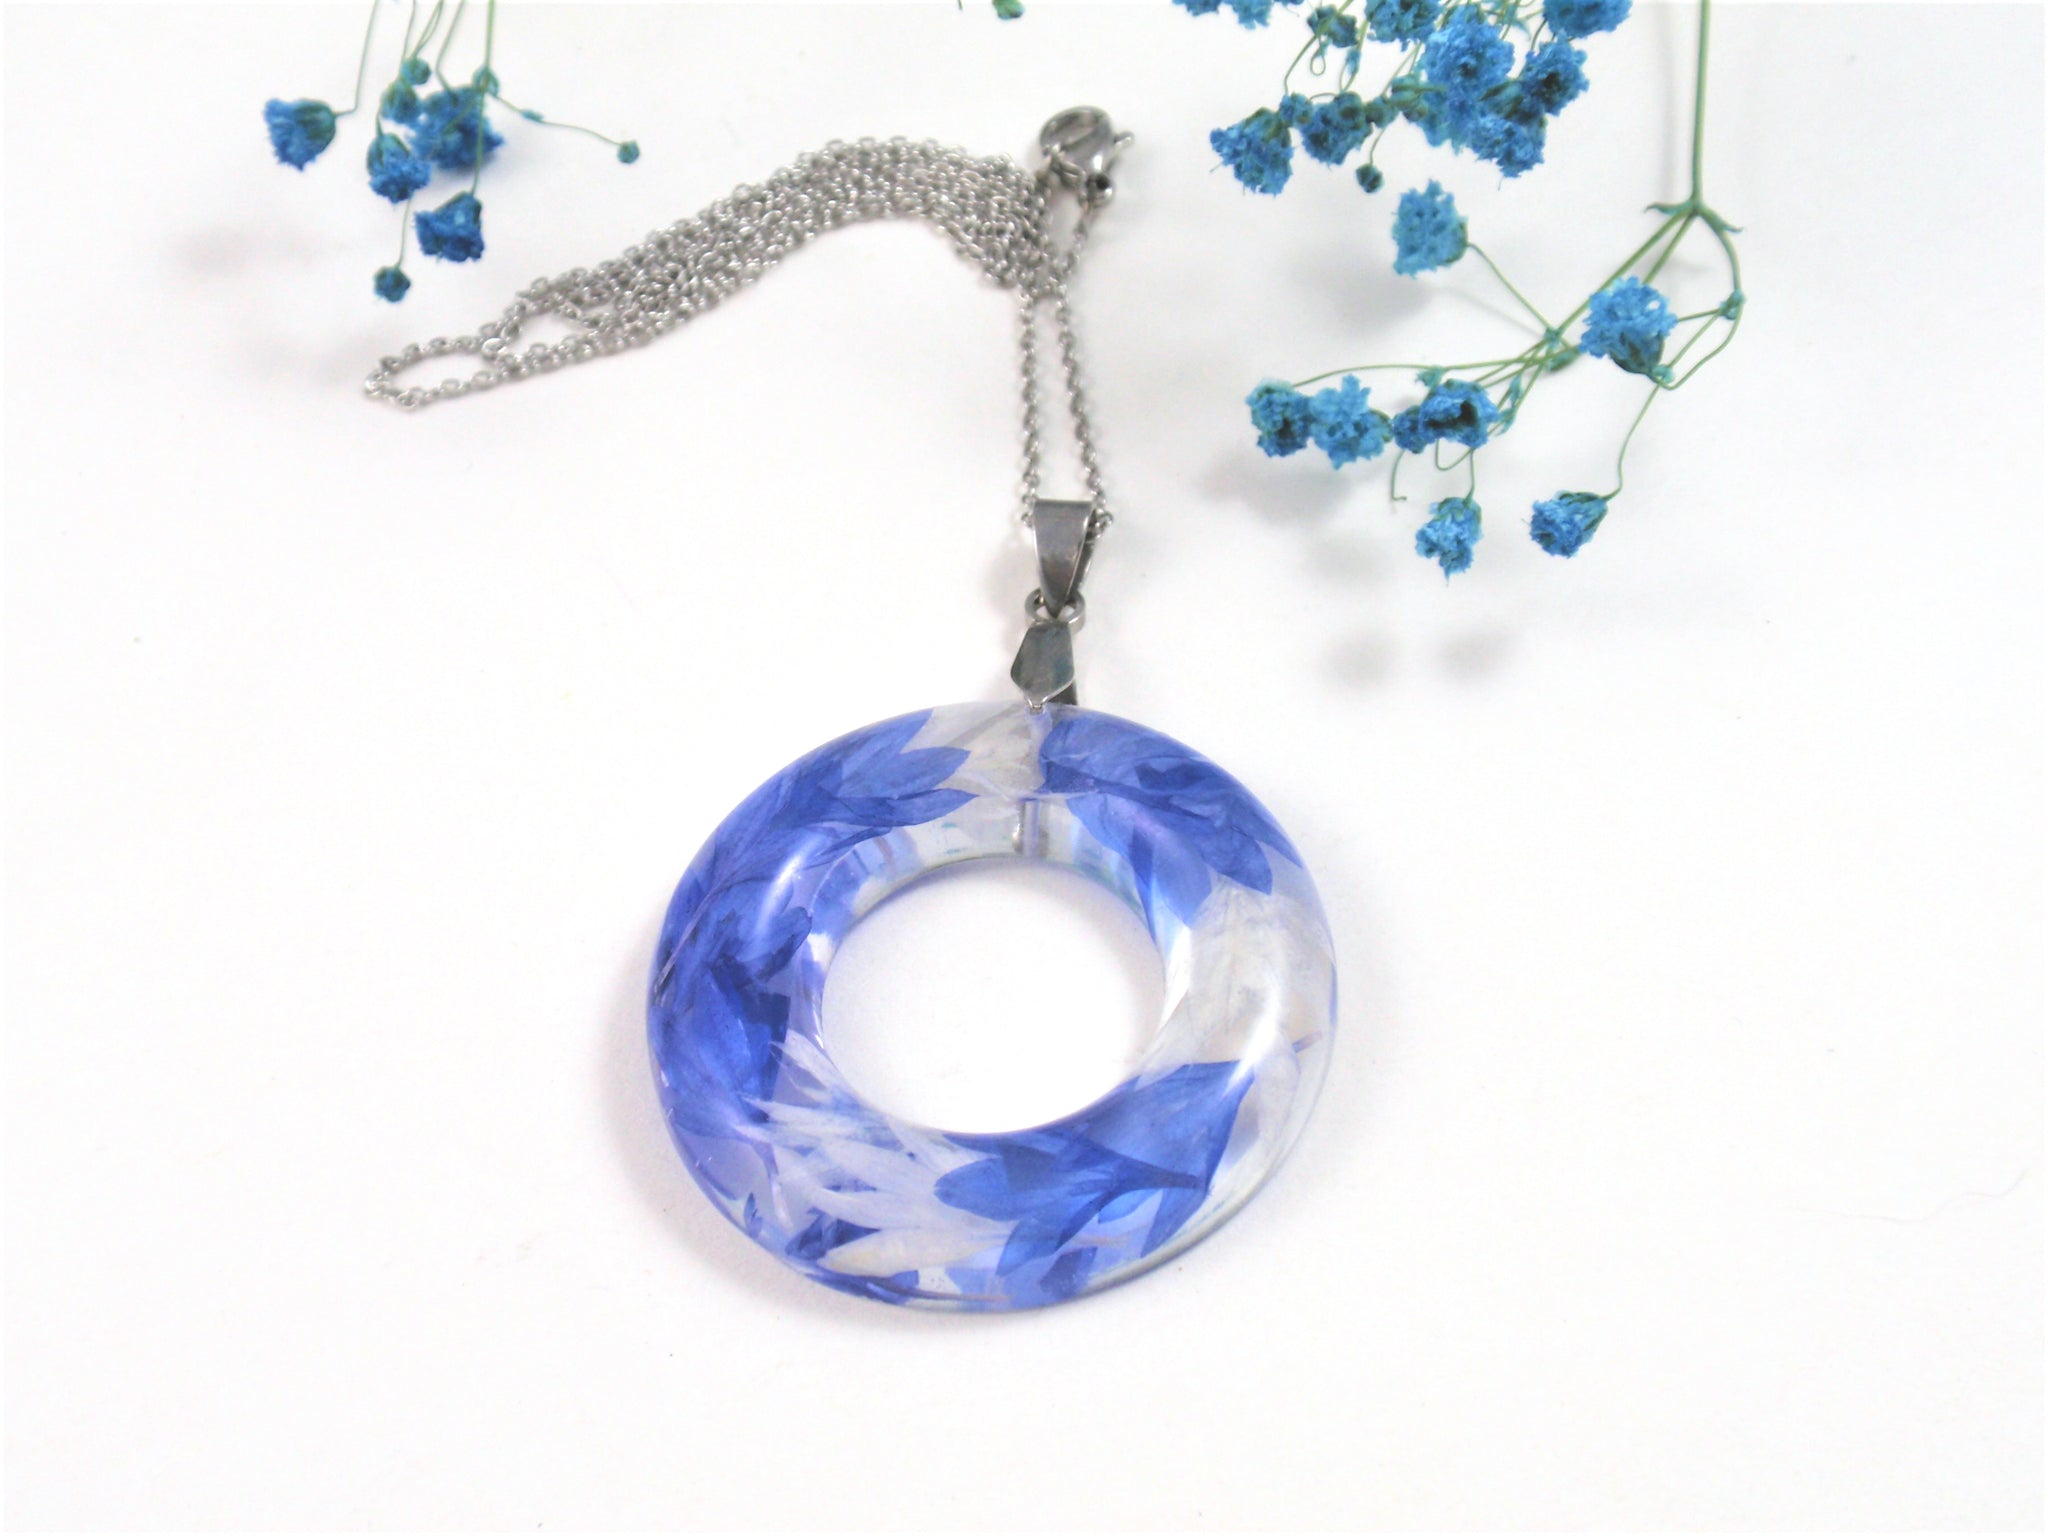 Botanical Pendant Real Flower Encased in Resin, Blue Cornflower flower pendant